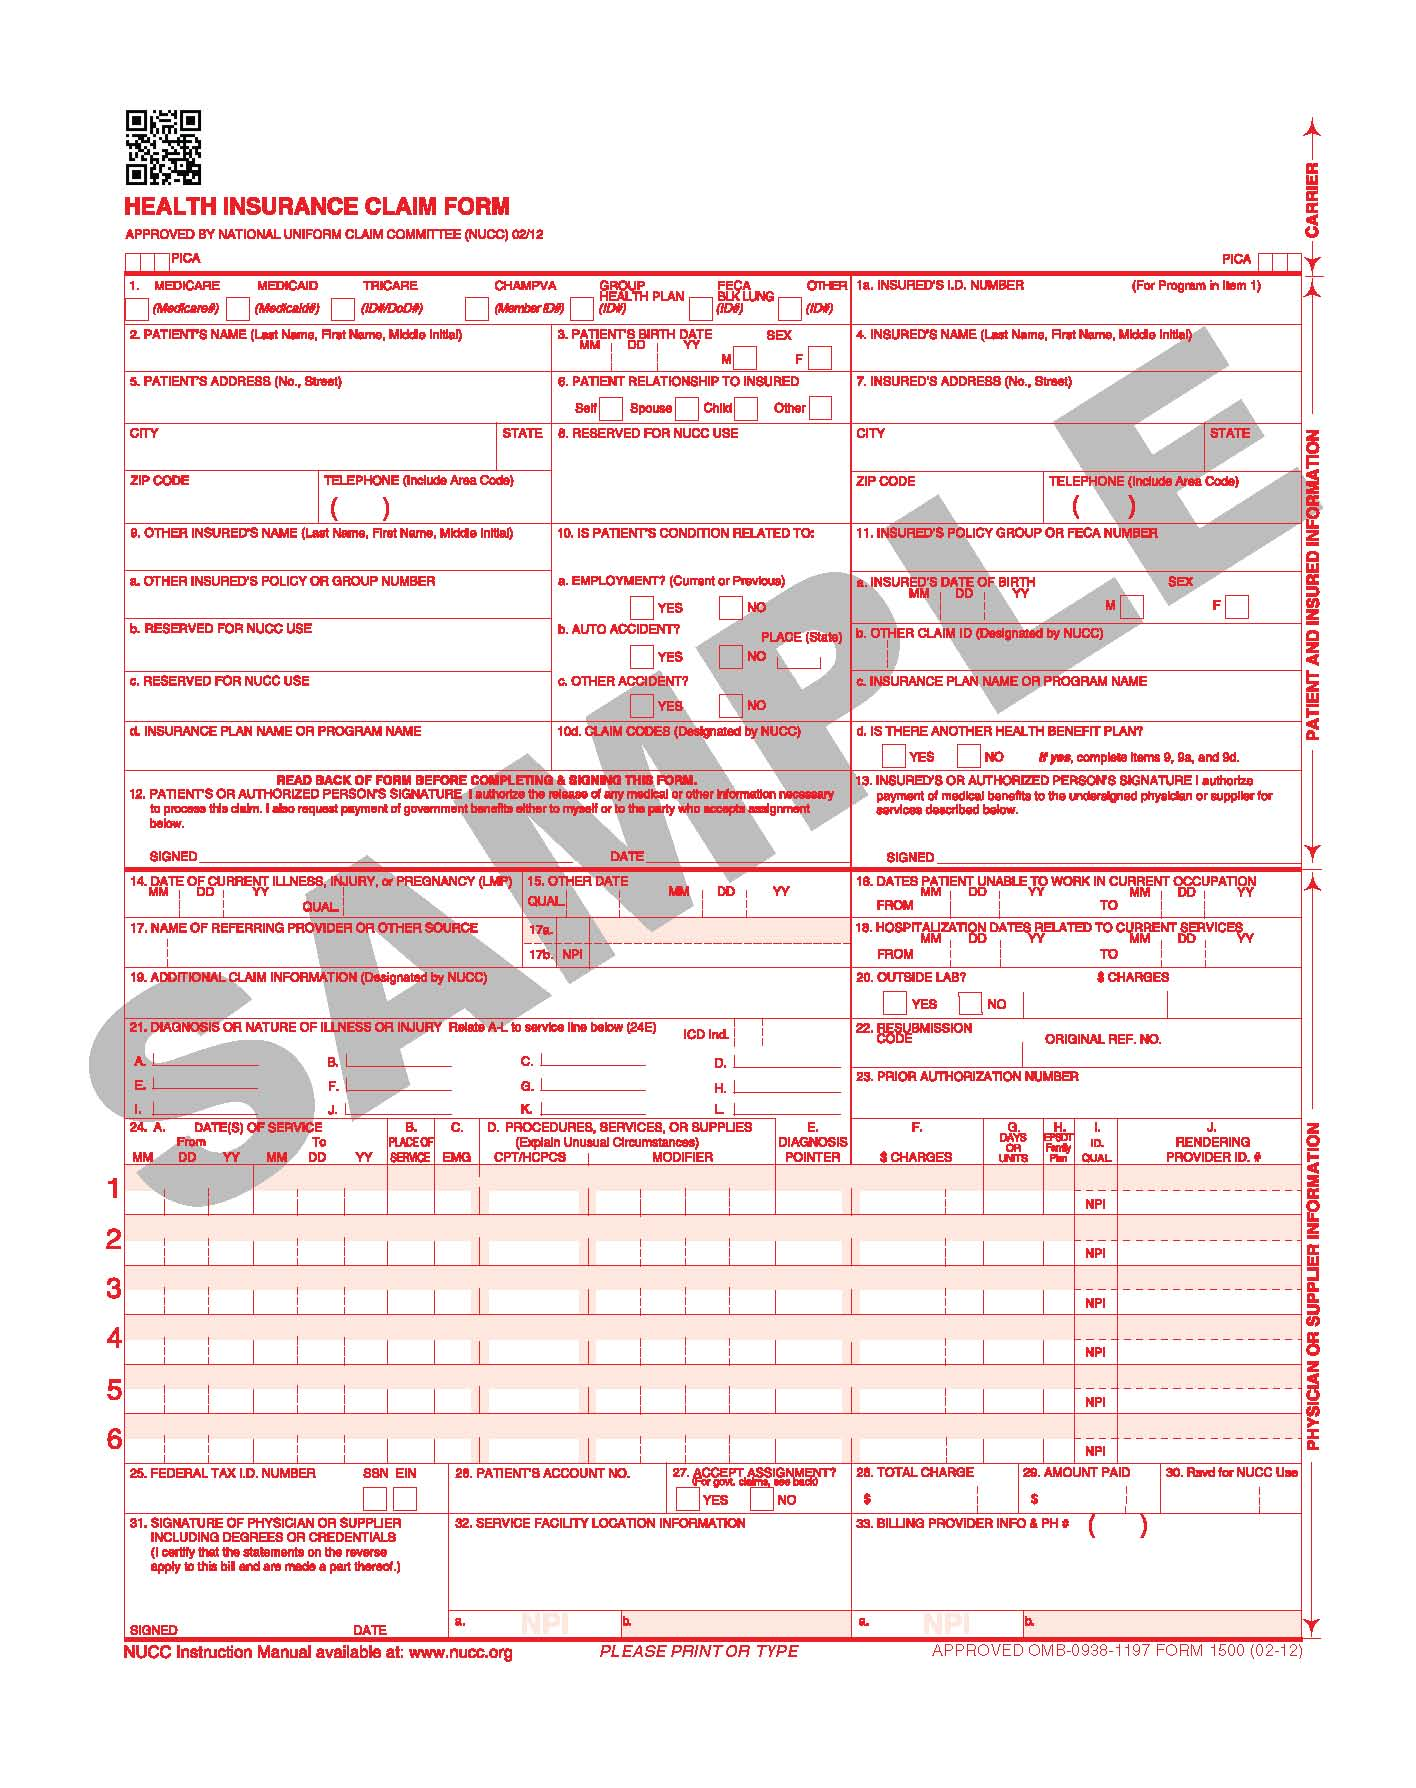 New Claim Form 1500 Coming Soon . . . Maybe? | CIPROMS, Inc.